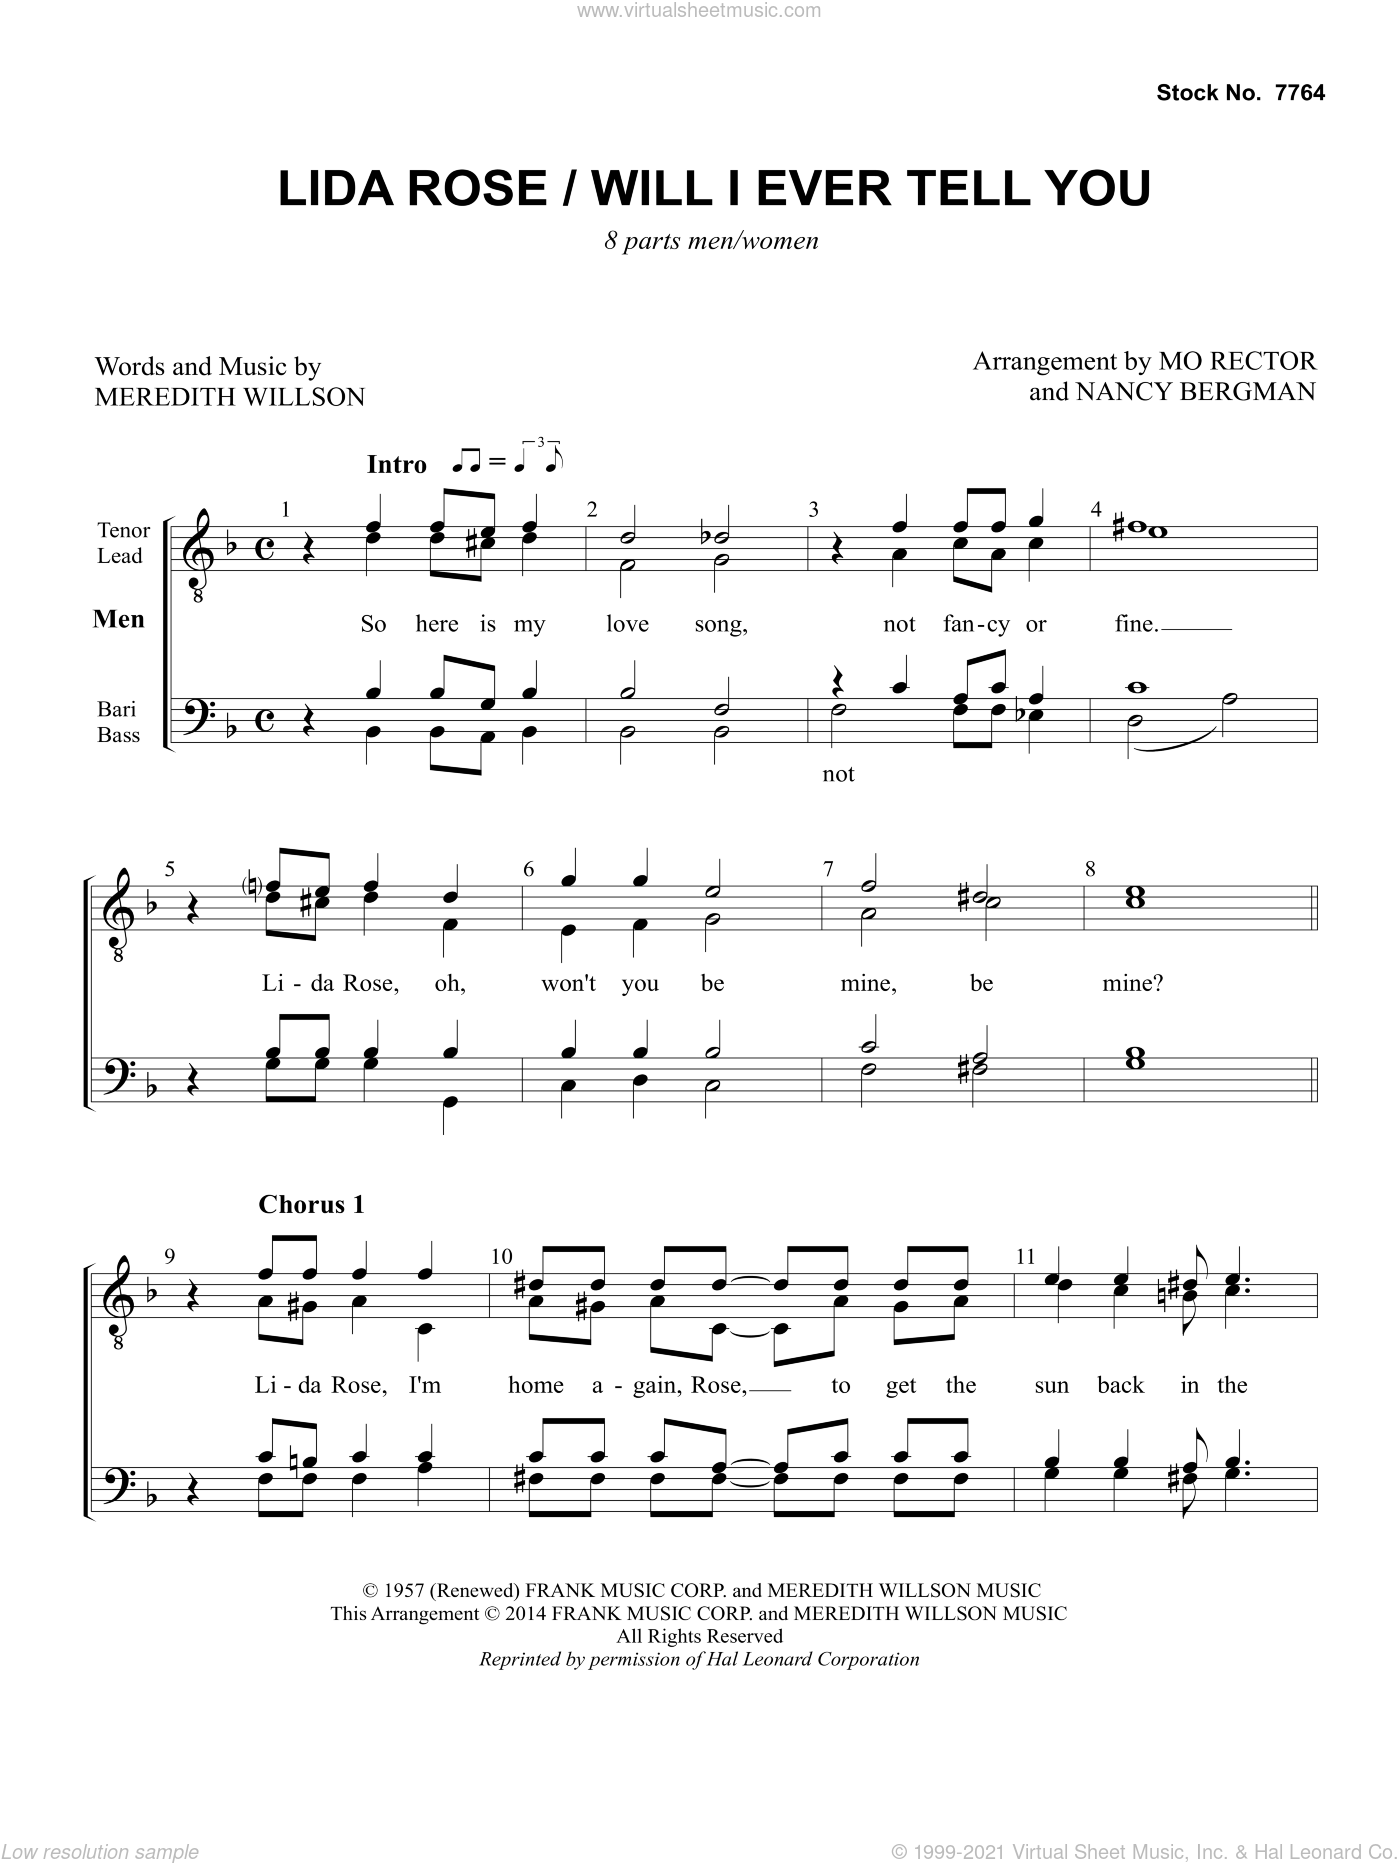 Lida Rose/Will I Ever Tell You (from The Music Man) (arr. Nancy Bergman, Mo Rector) sheet music for choir by Meredith Willson, Mo Rector and Nancy Bergman, intermediate skill level